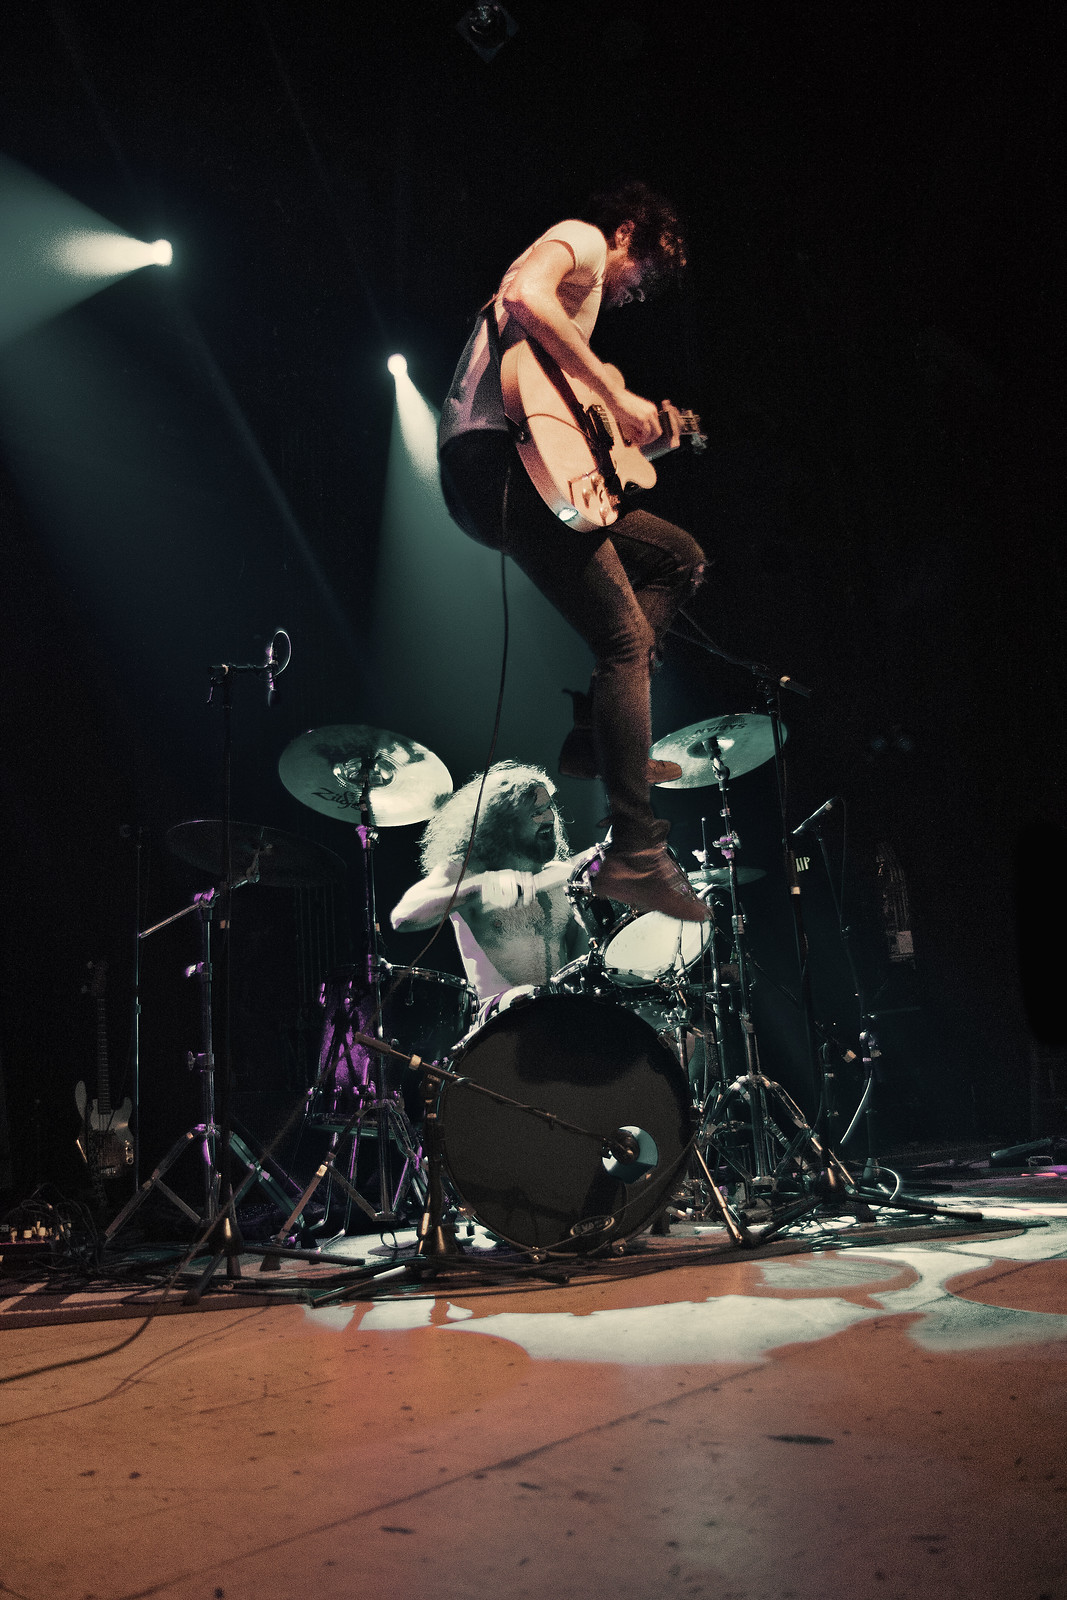 Black Pistol Fire - Denver concert photos